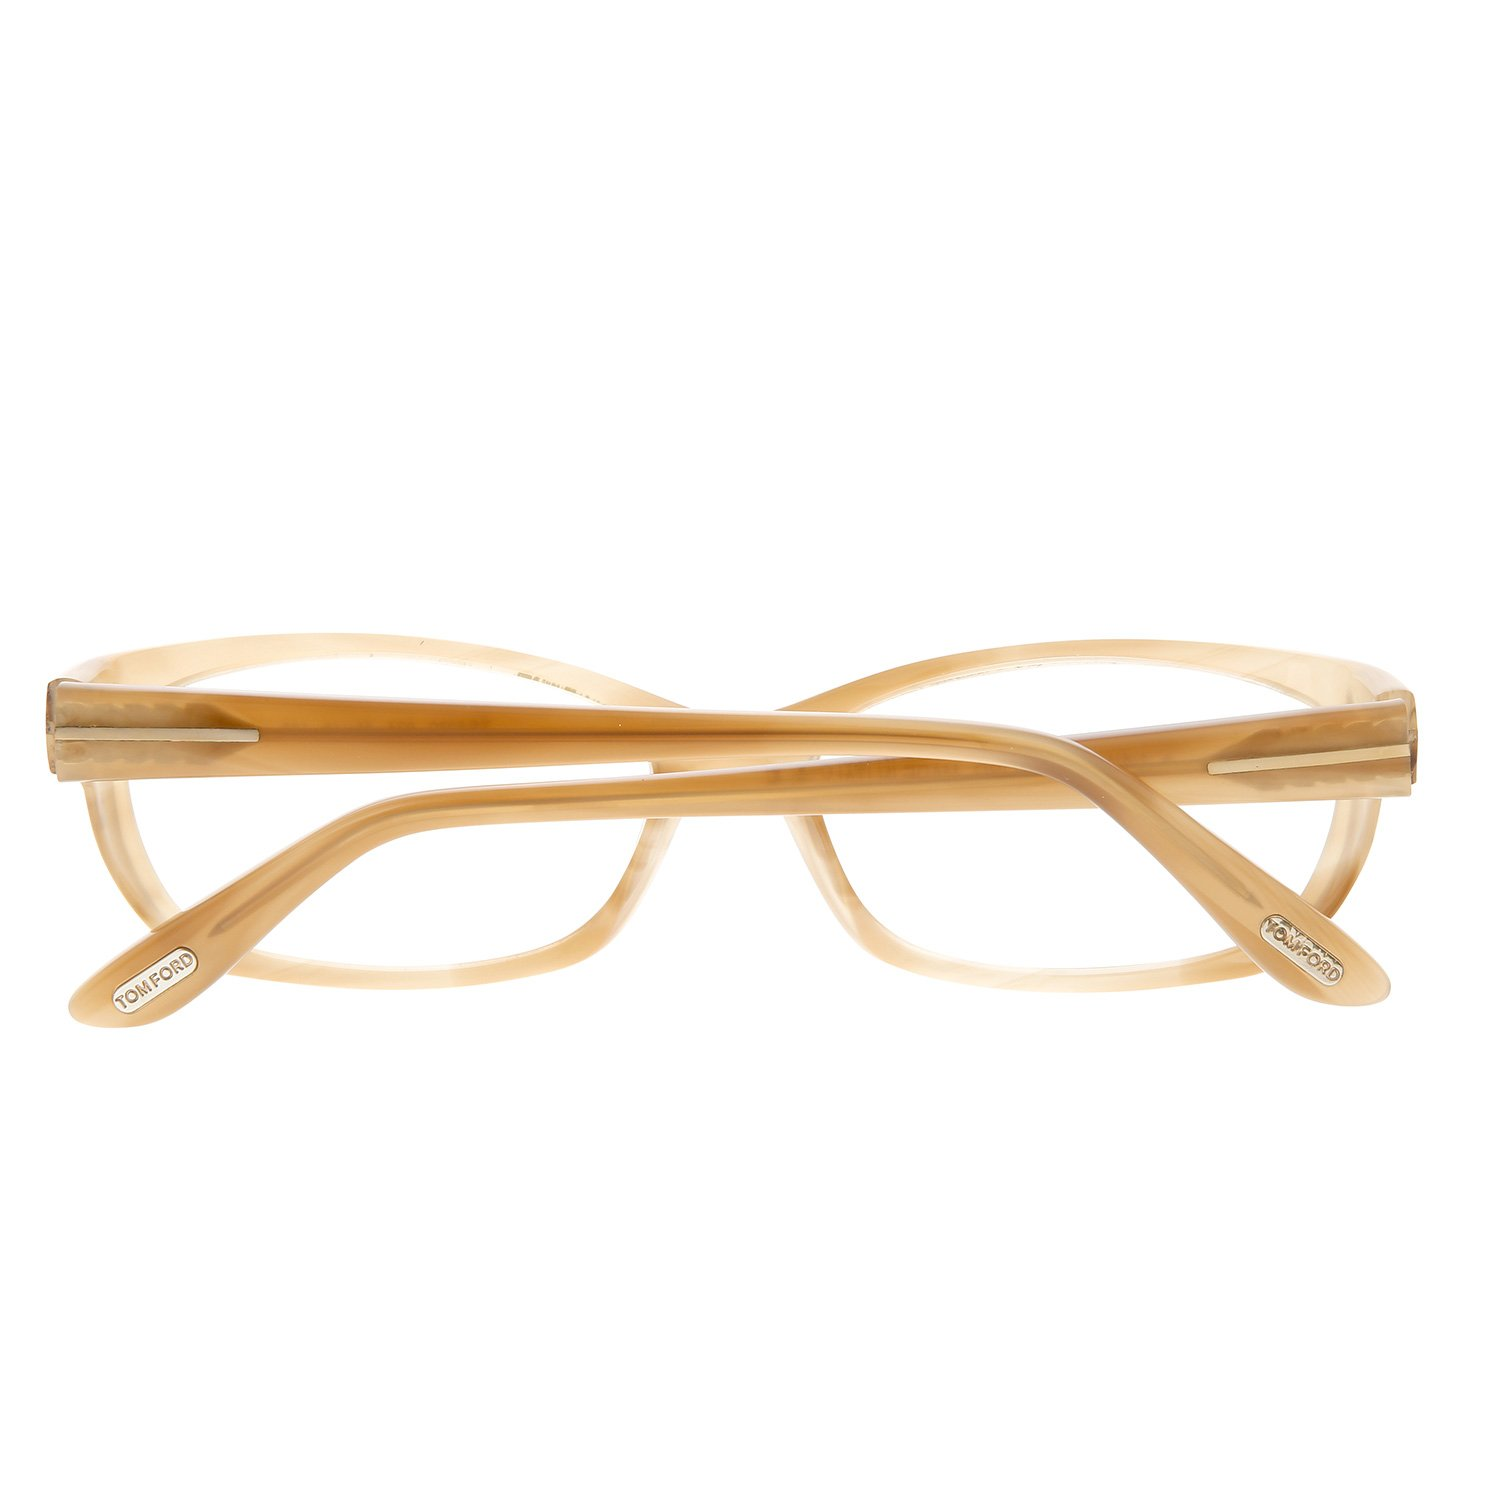 d148633b02 Tom Ford Women''s Brille FT5230 024 Optical Frames, Brown (Braun), 55:  Amazon.co.uk: Clothing